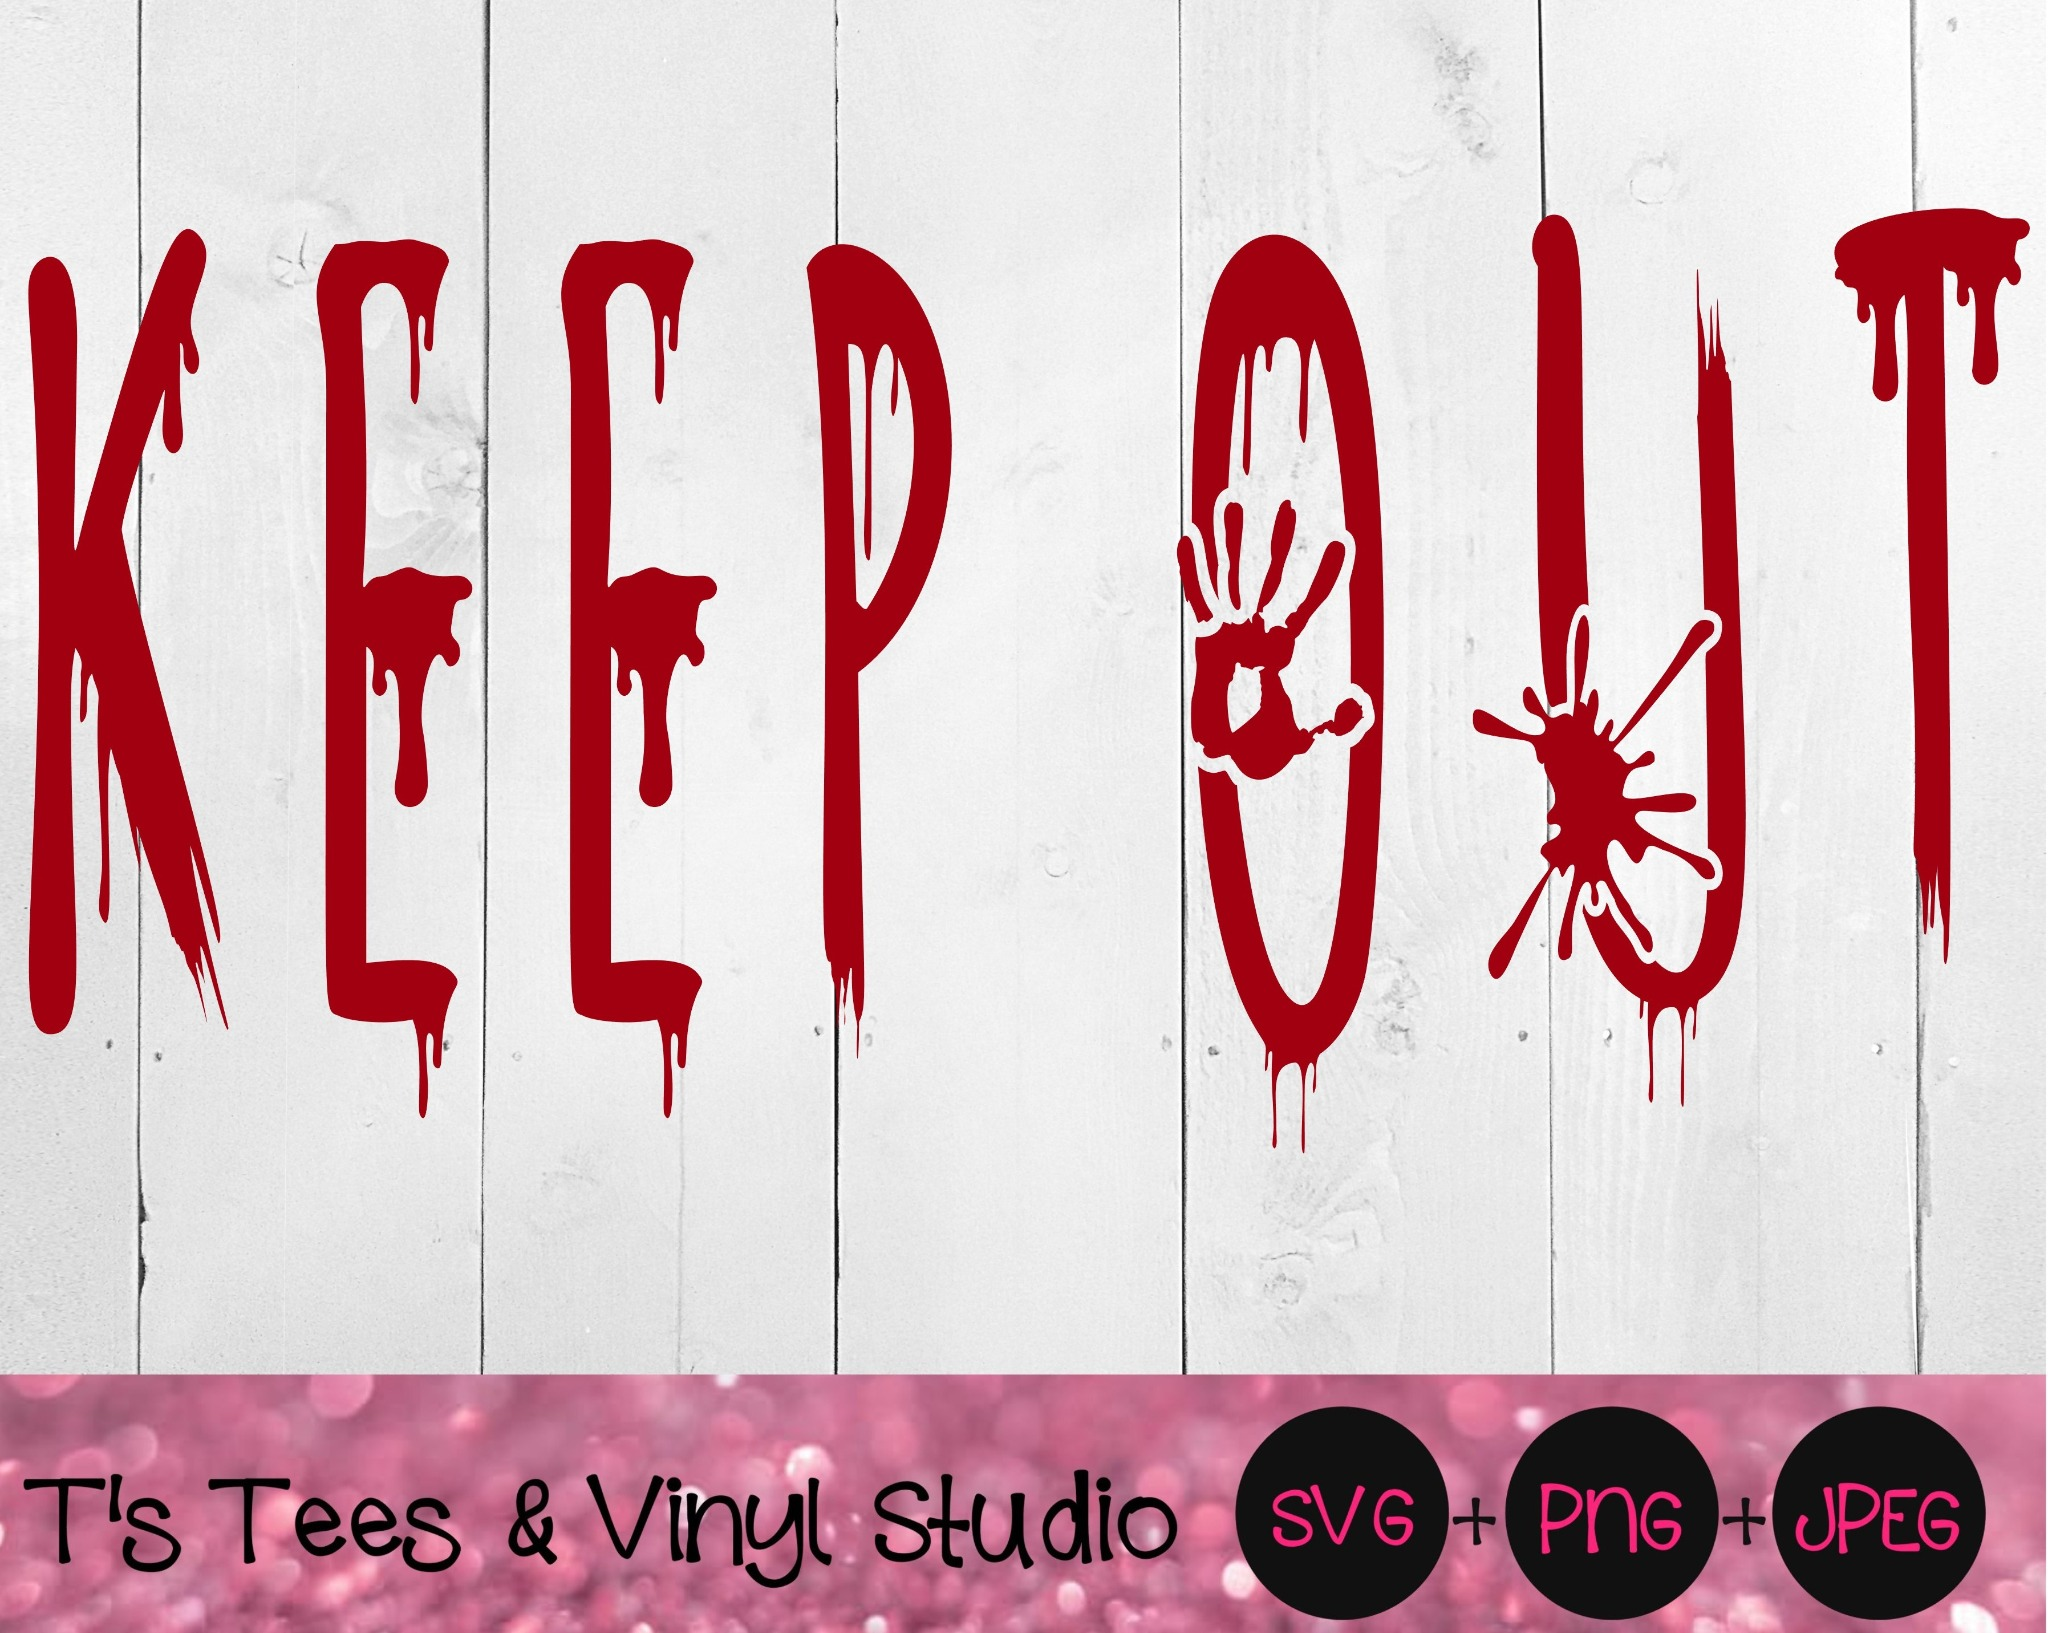 Keep Out Svg, Go Away, Halloween Svg, Horror Svg, Creepy Scary Cut File, Haunted House, Graveyard, H